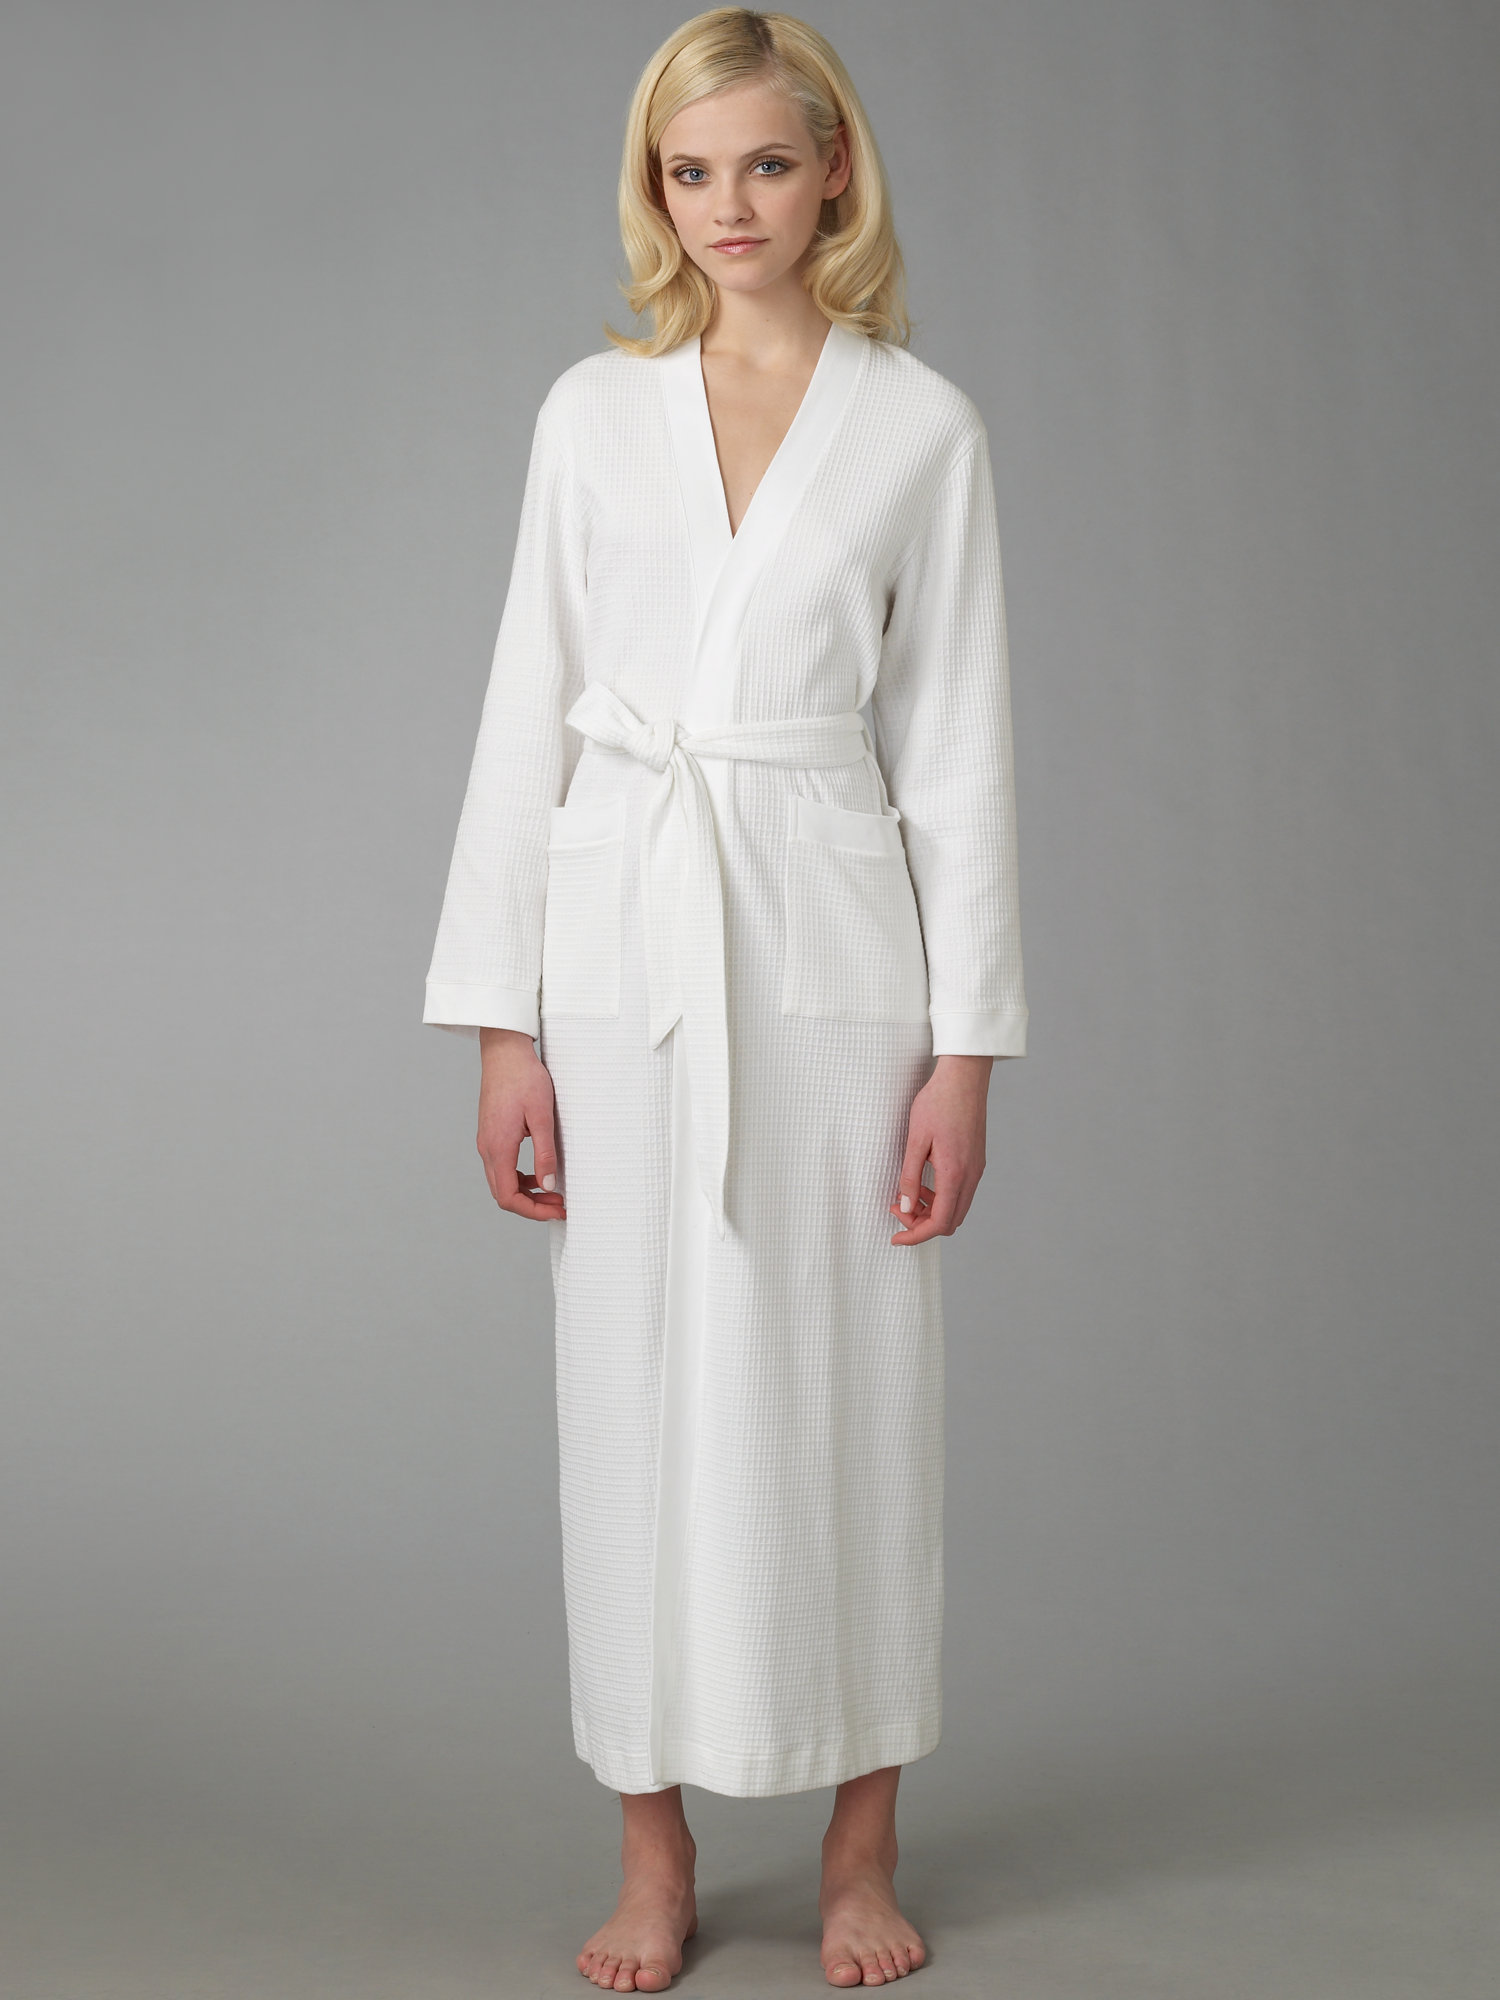 Lyst - Hanro Long Waffle Robe in White